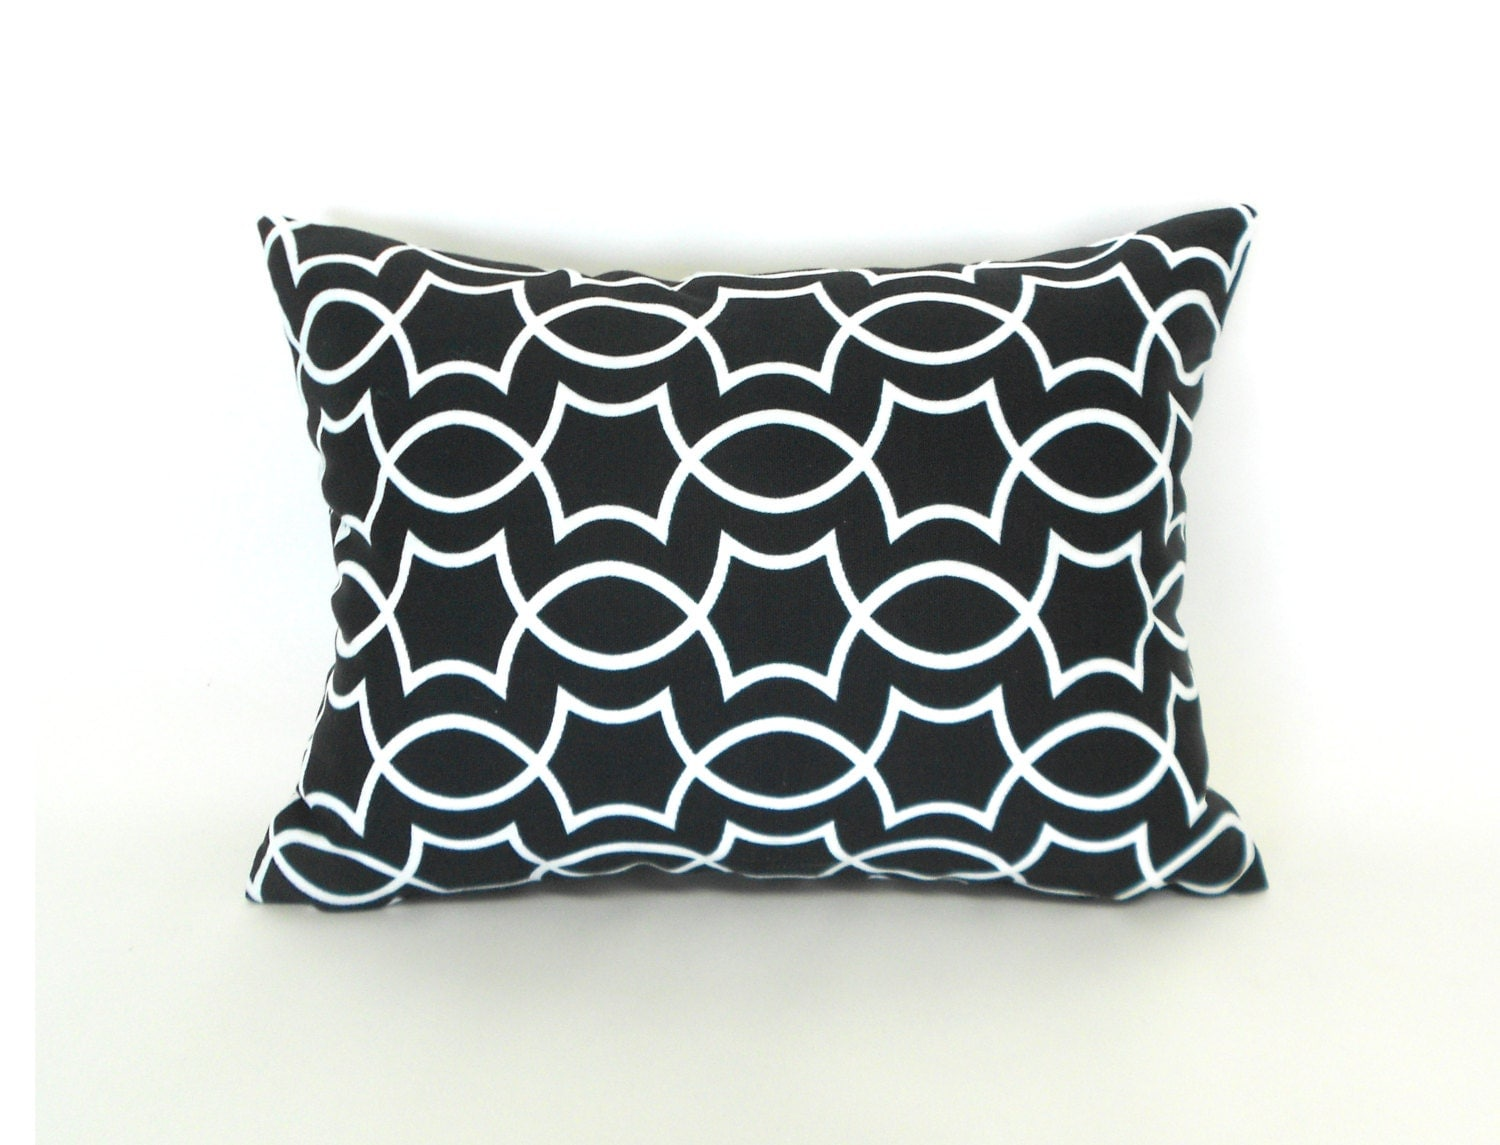 sale outdoor lumbar pillow covers decorative black and white. Black Bedroom Furniture Sets. Home Design Ideas